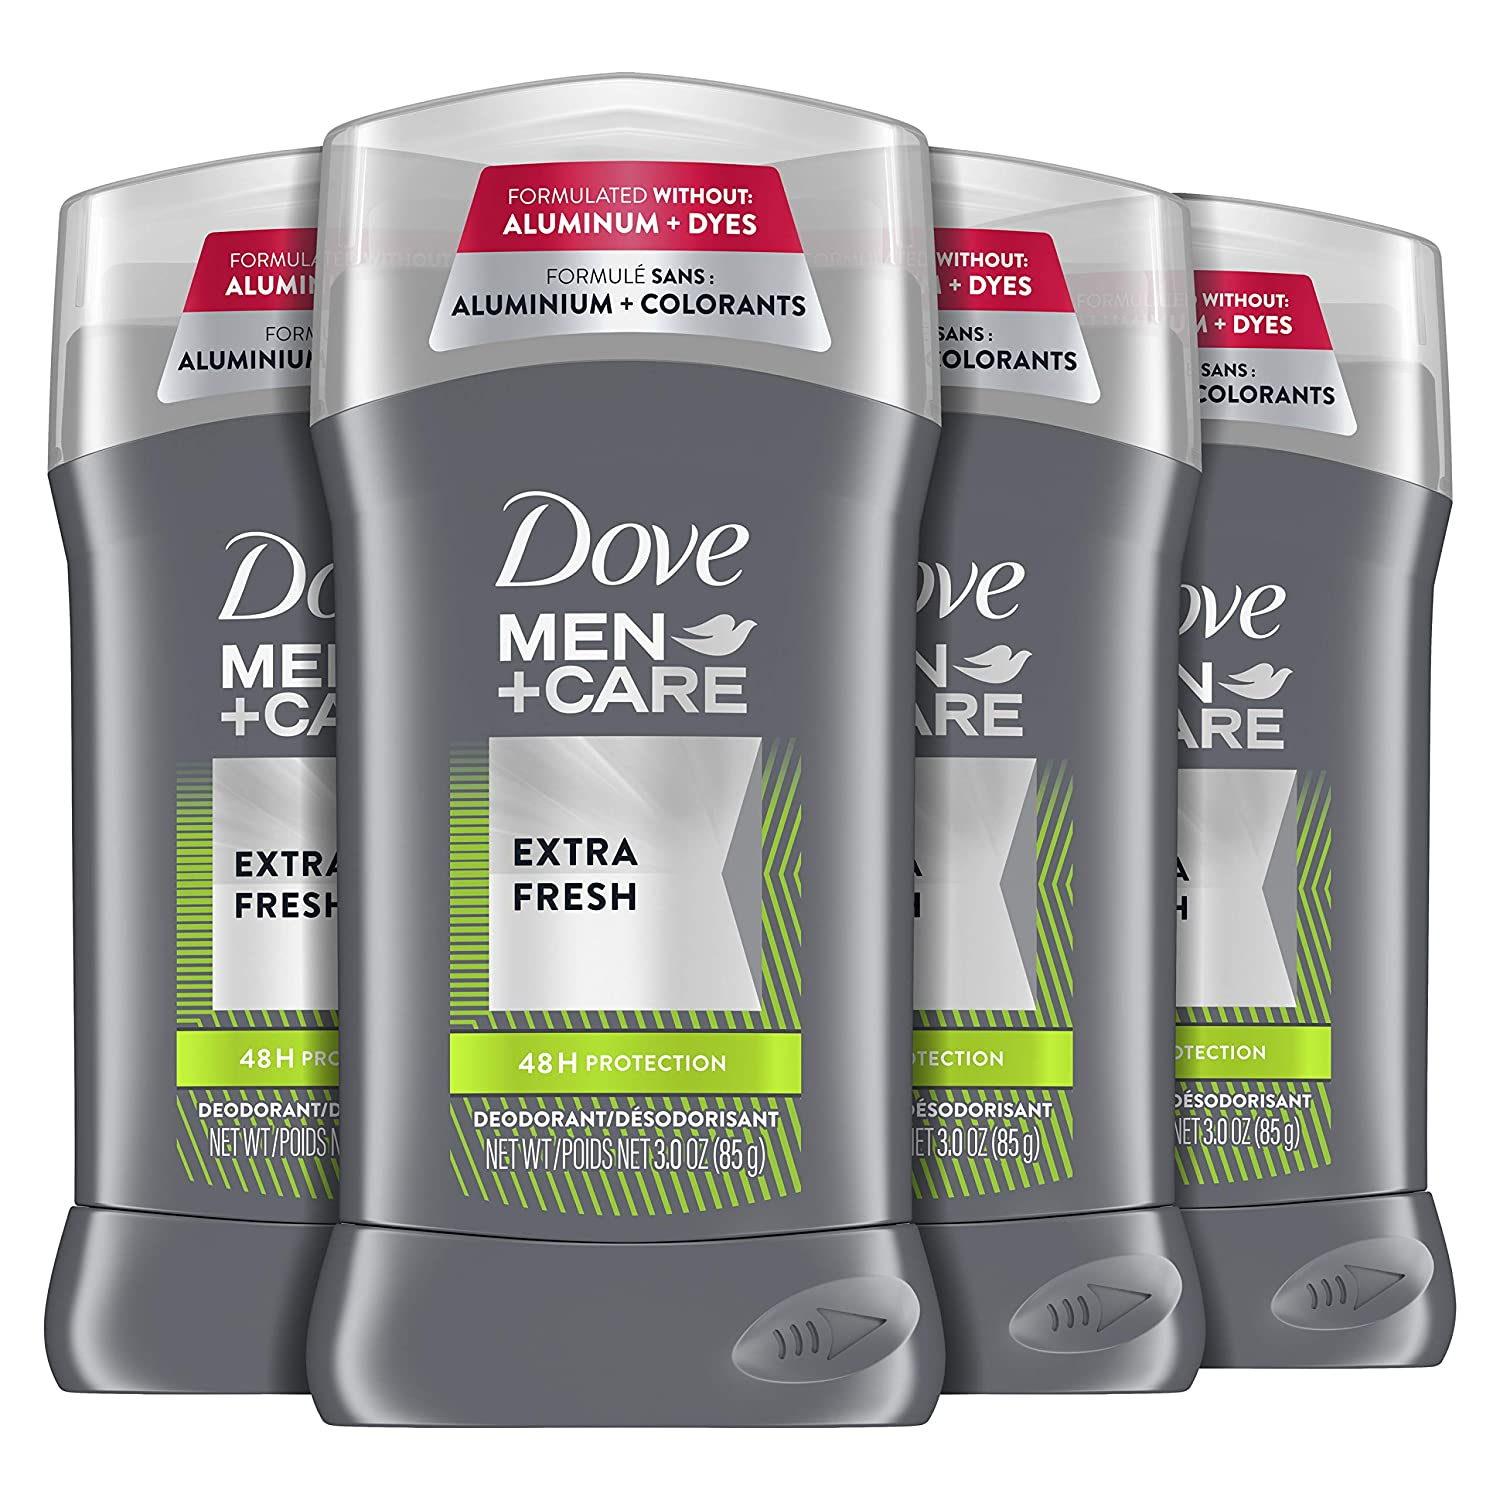 Dove Men+Care Deodorant Stick Aluminum-free formula with 48-Hour Protection Extra Fresh Deodorant for men with Vitamin E and Triple Action Moisturizer 3 oz 4 Count